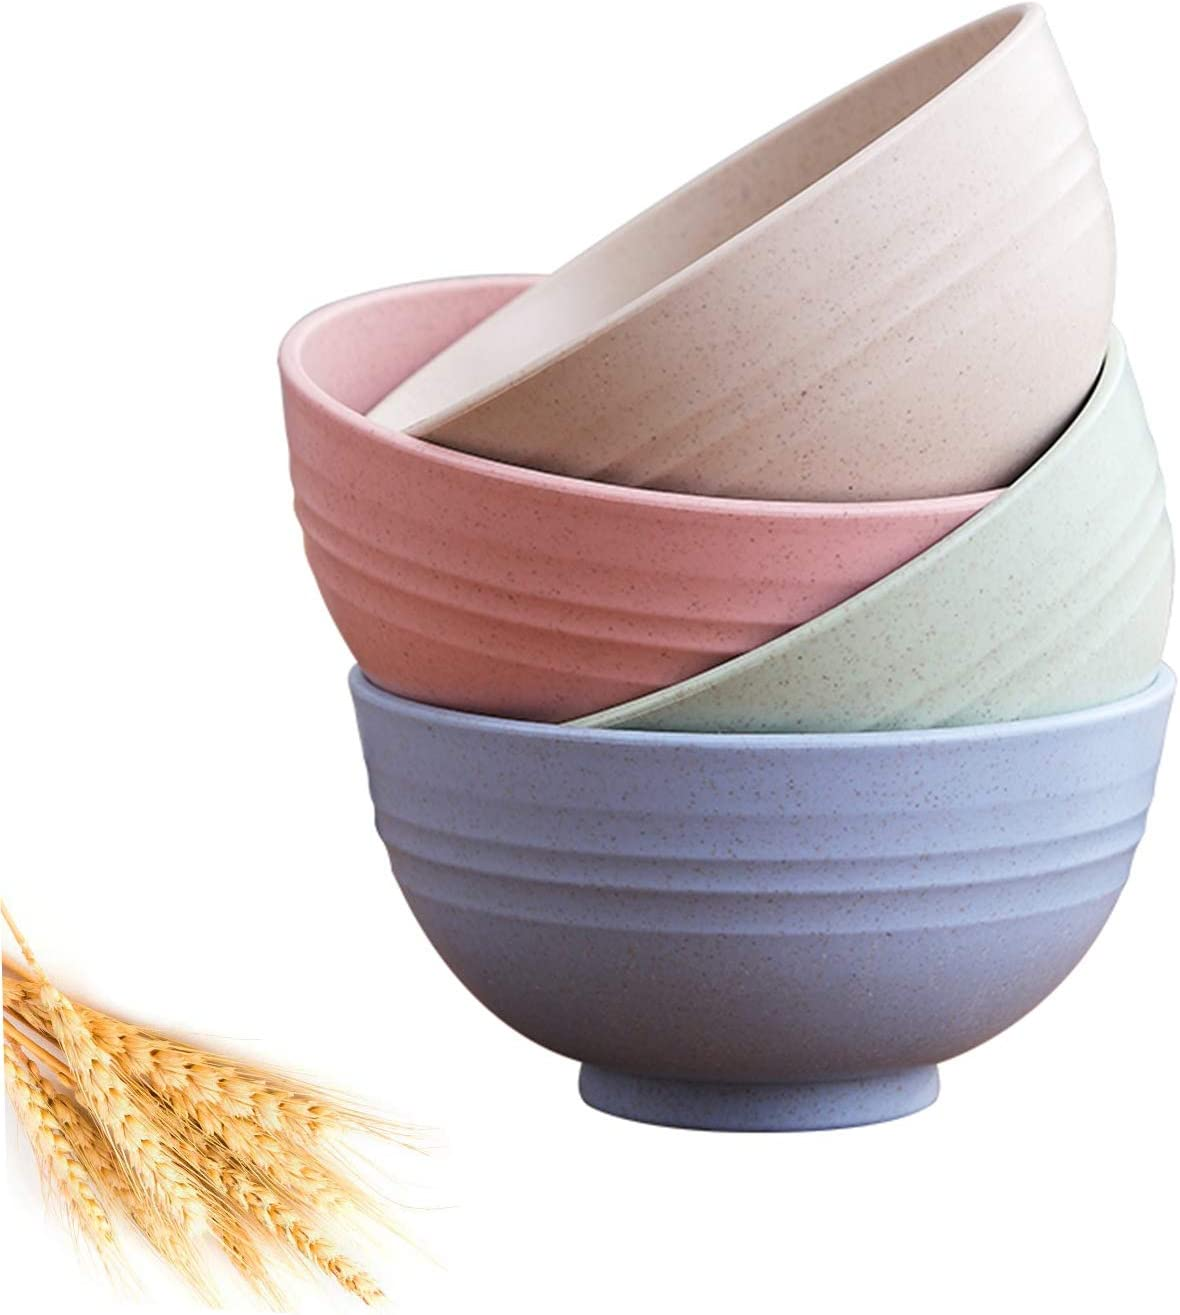 Unbreakable Cereal Bowls - 24 OZ Wheat Straw Fiber Lightweight Bowl Sets 4 - Dishwasher & Microwave Safe - for,Rice,Soup Bowls